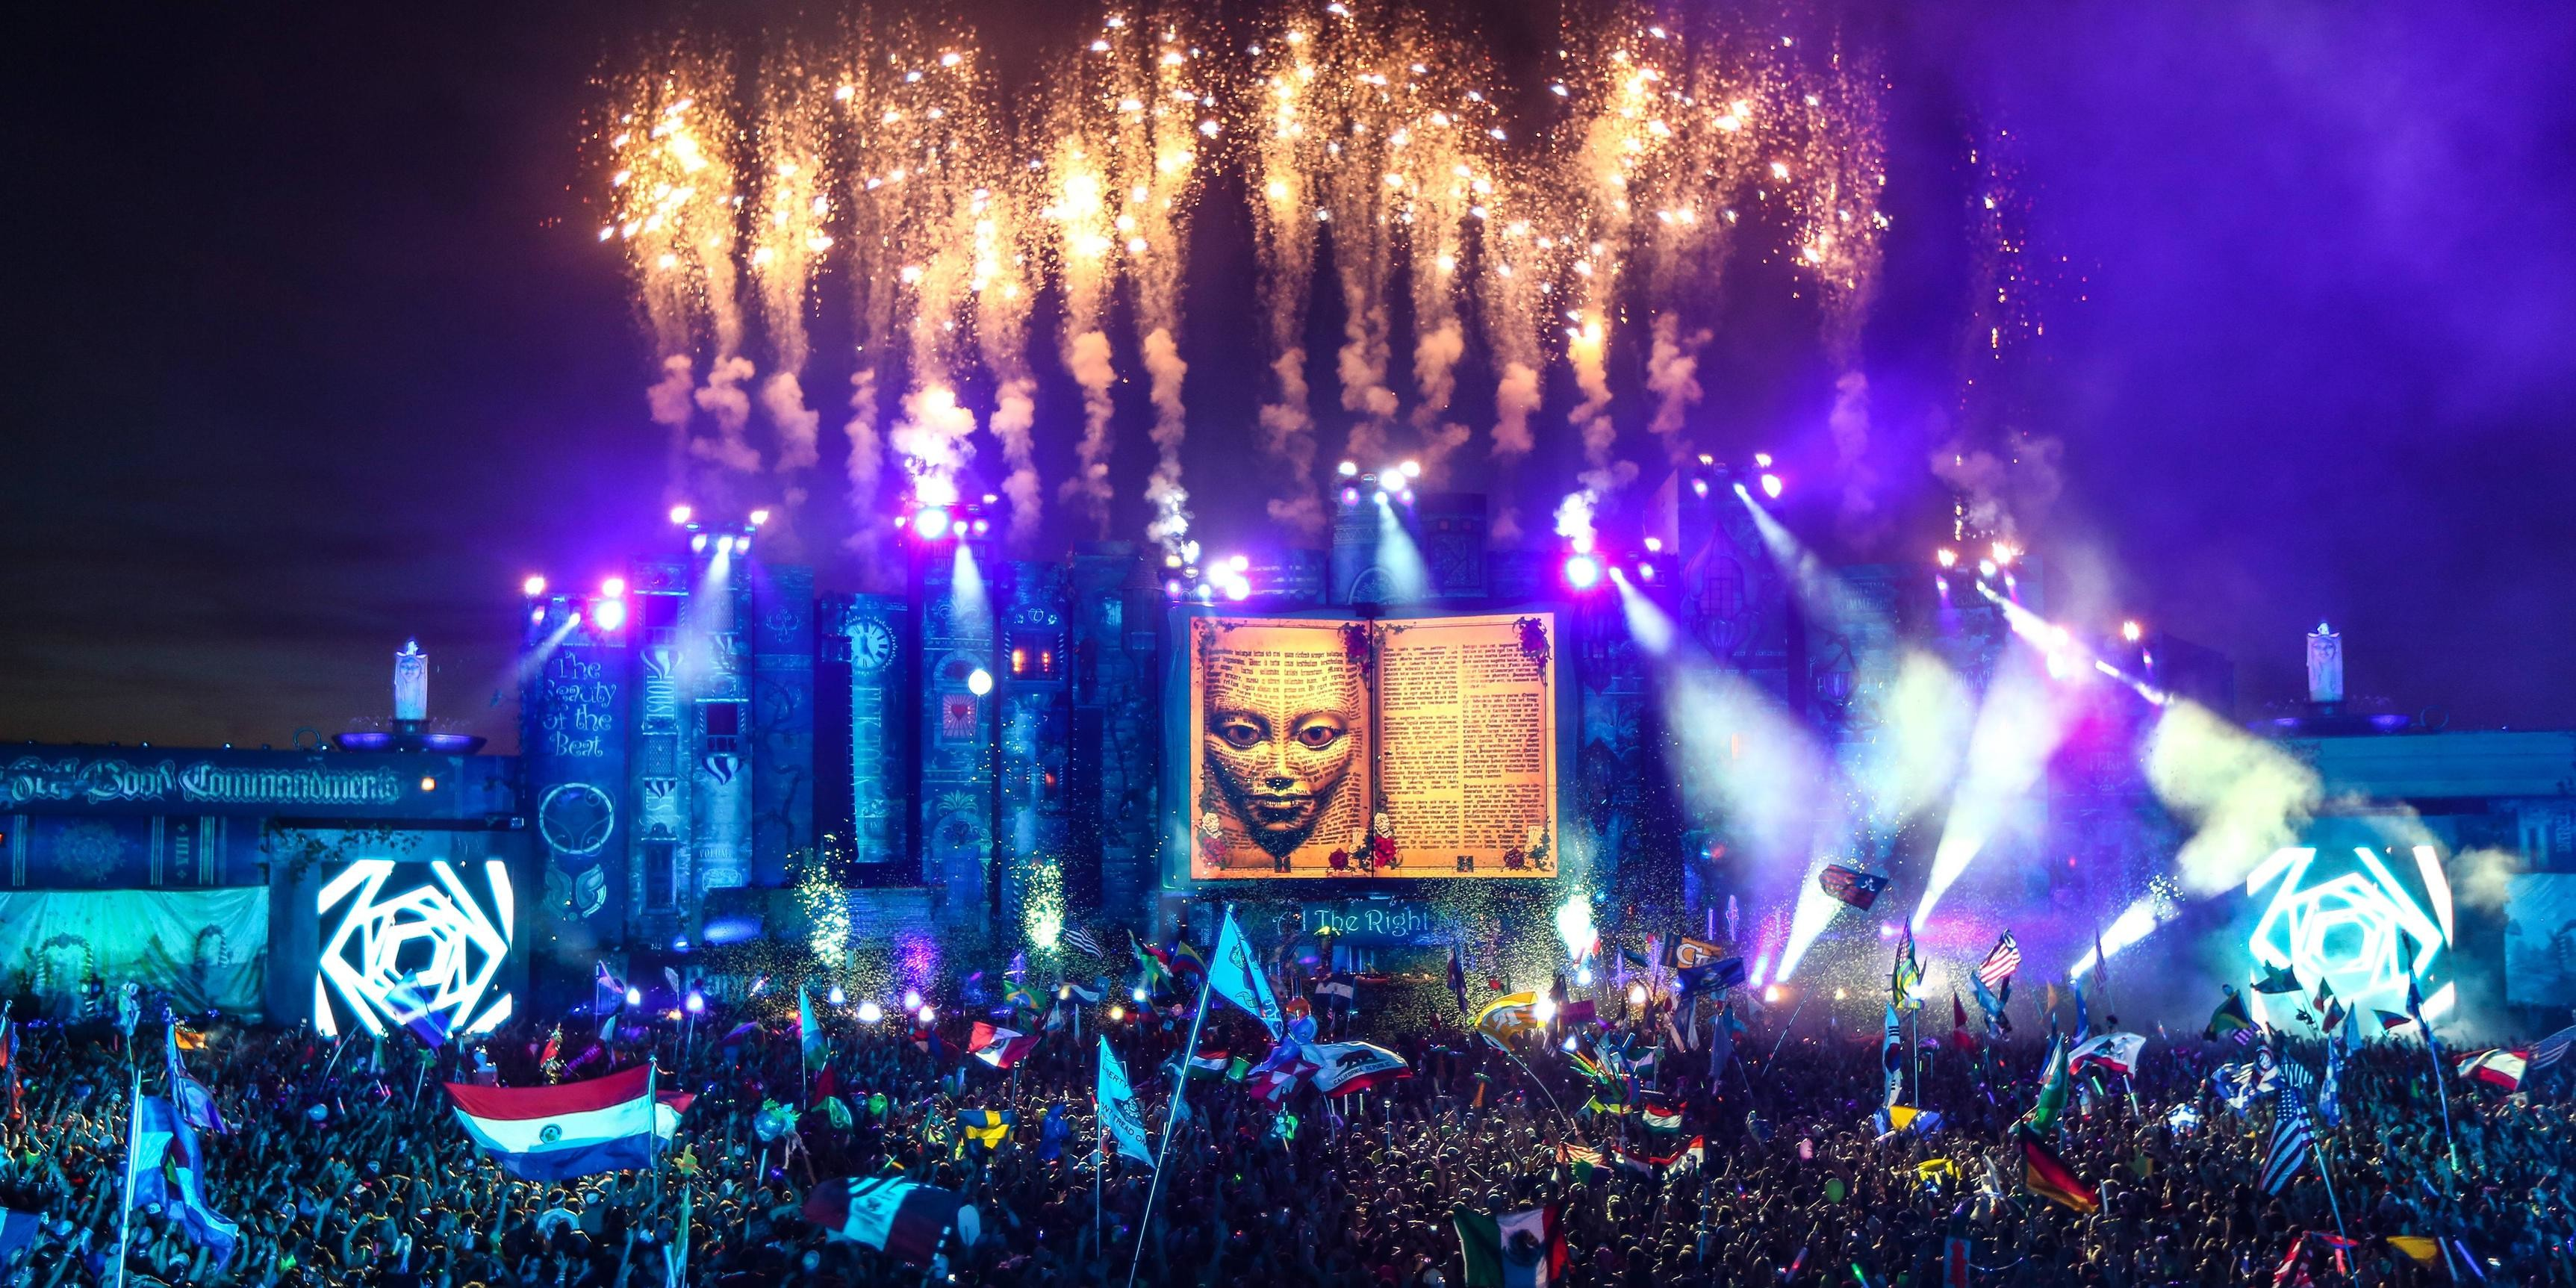 Tomorrowland 2018 Laser Show Hd Wallpaper 72 Images